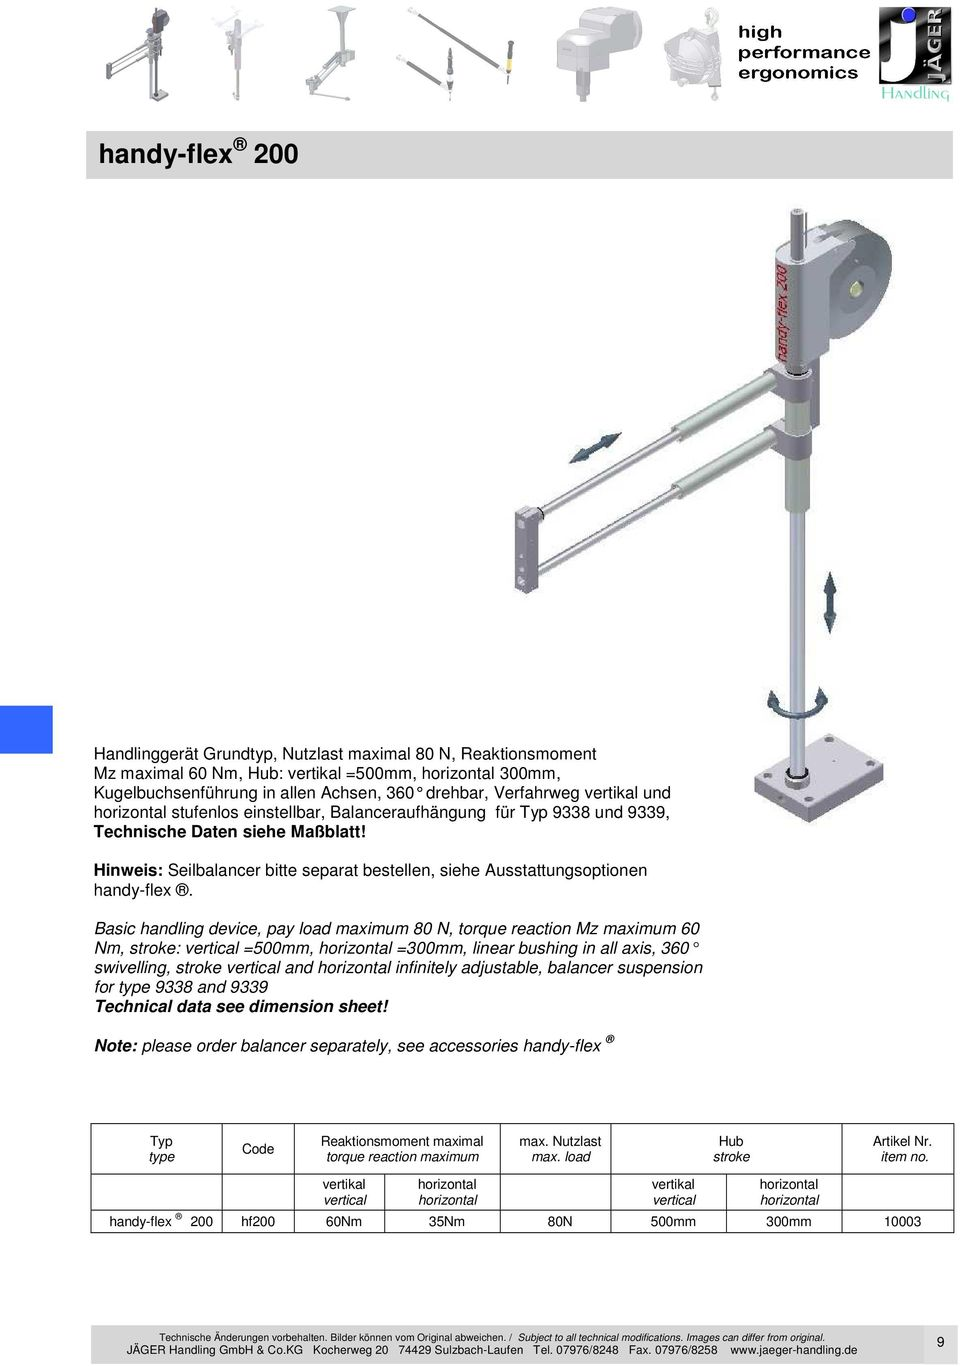 Basic handling device, pay load maximum 80 N, torque reaction Mz maximum 60 Nm, stroke: vertical =500mm, =300mm, linear bushing in all axis, 360 swivelling, stroke vertical and infinitely adjustable,